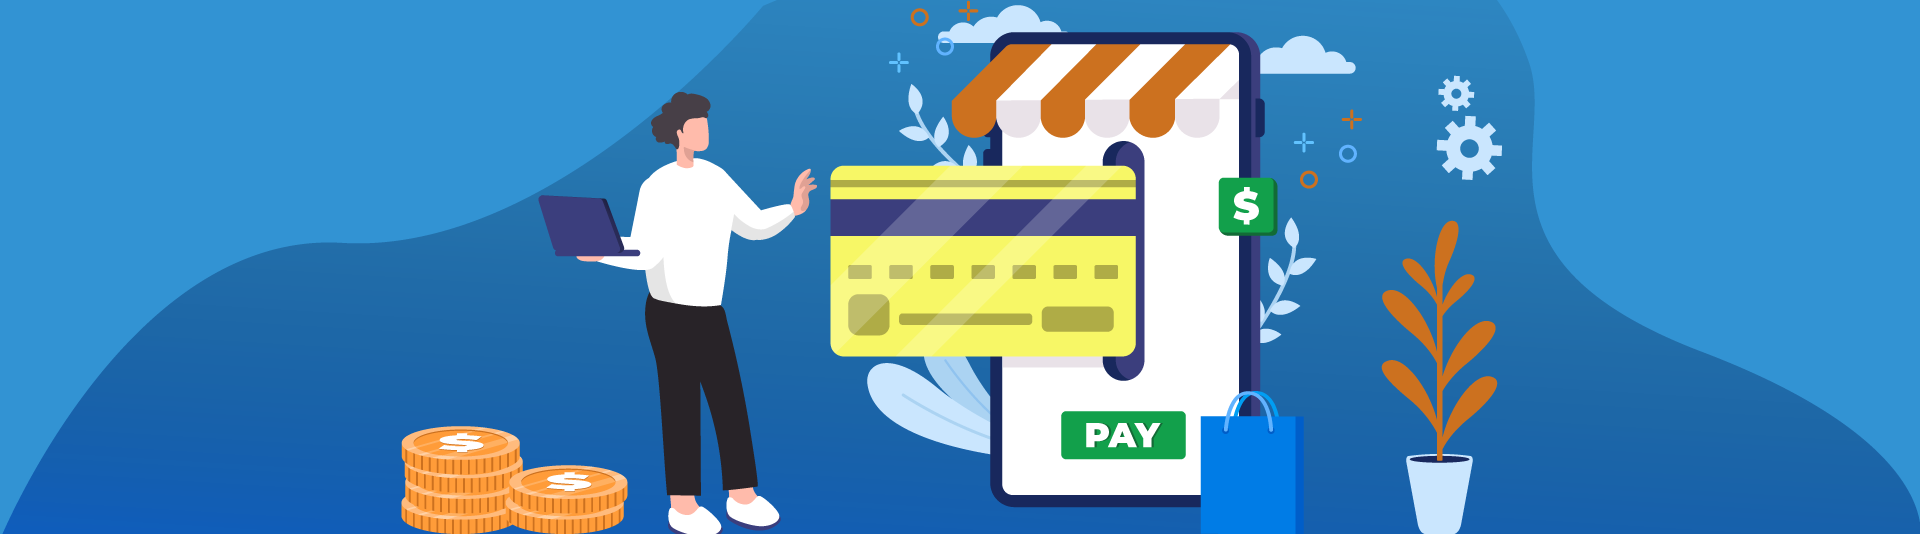 Quick and Excellent Customer Support with Invoice E-payment